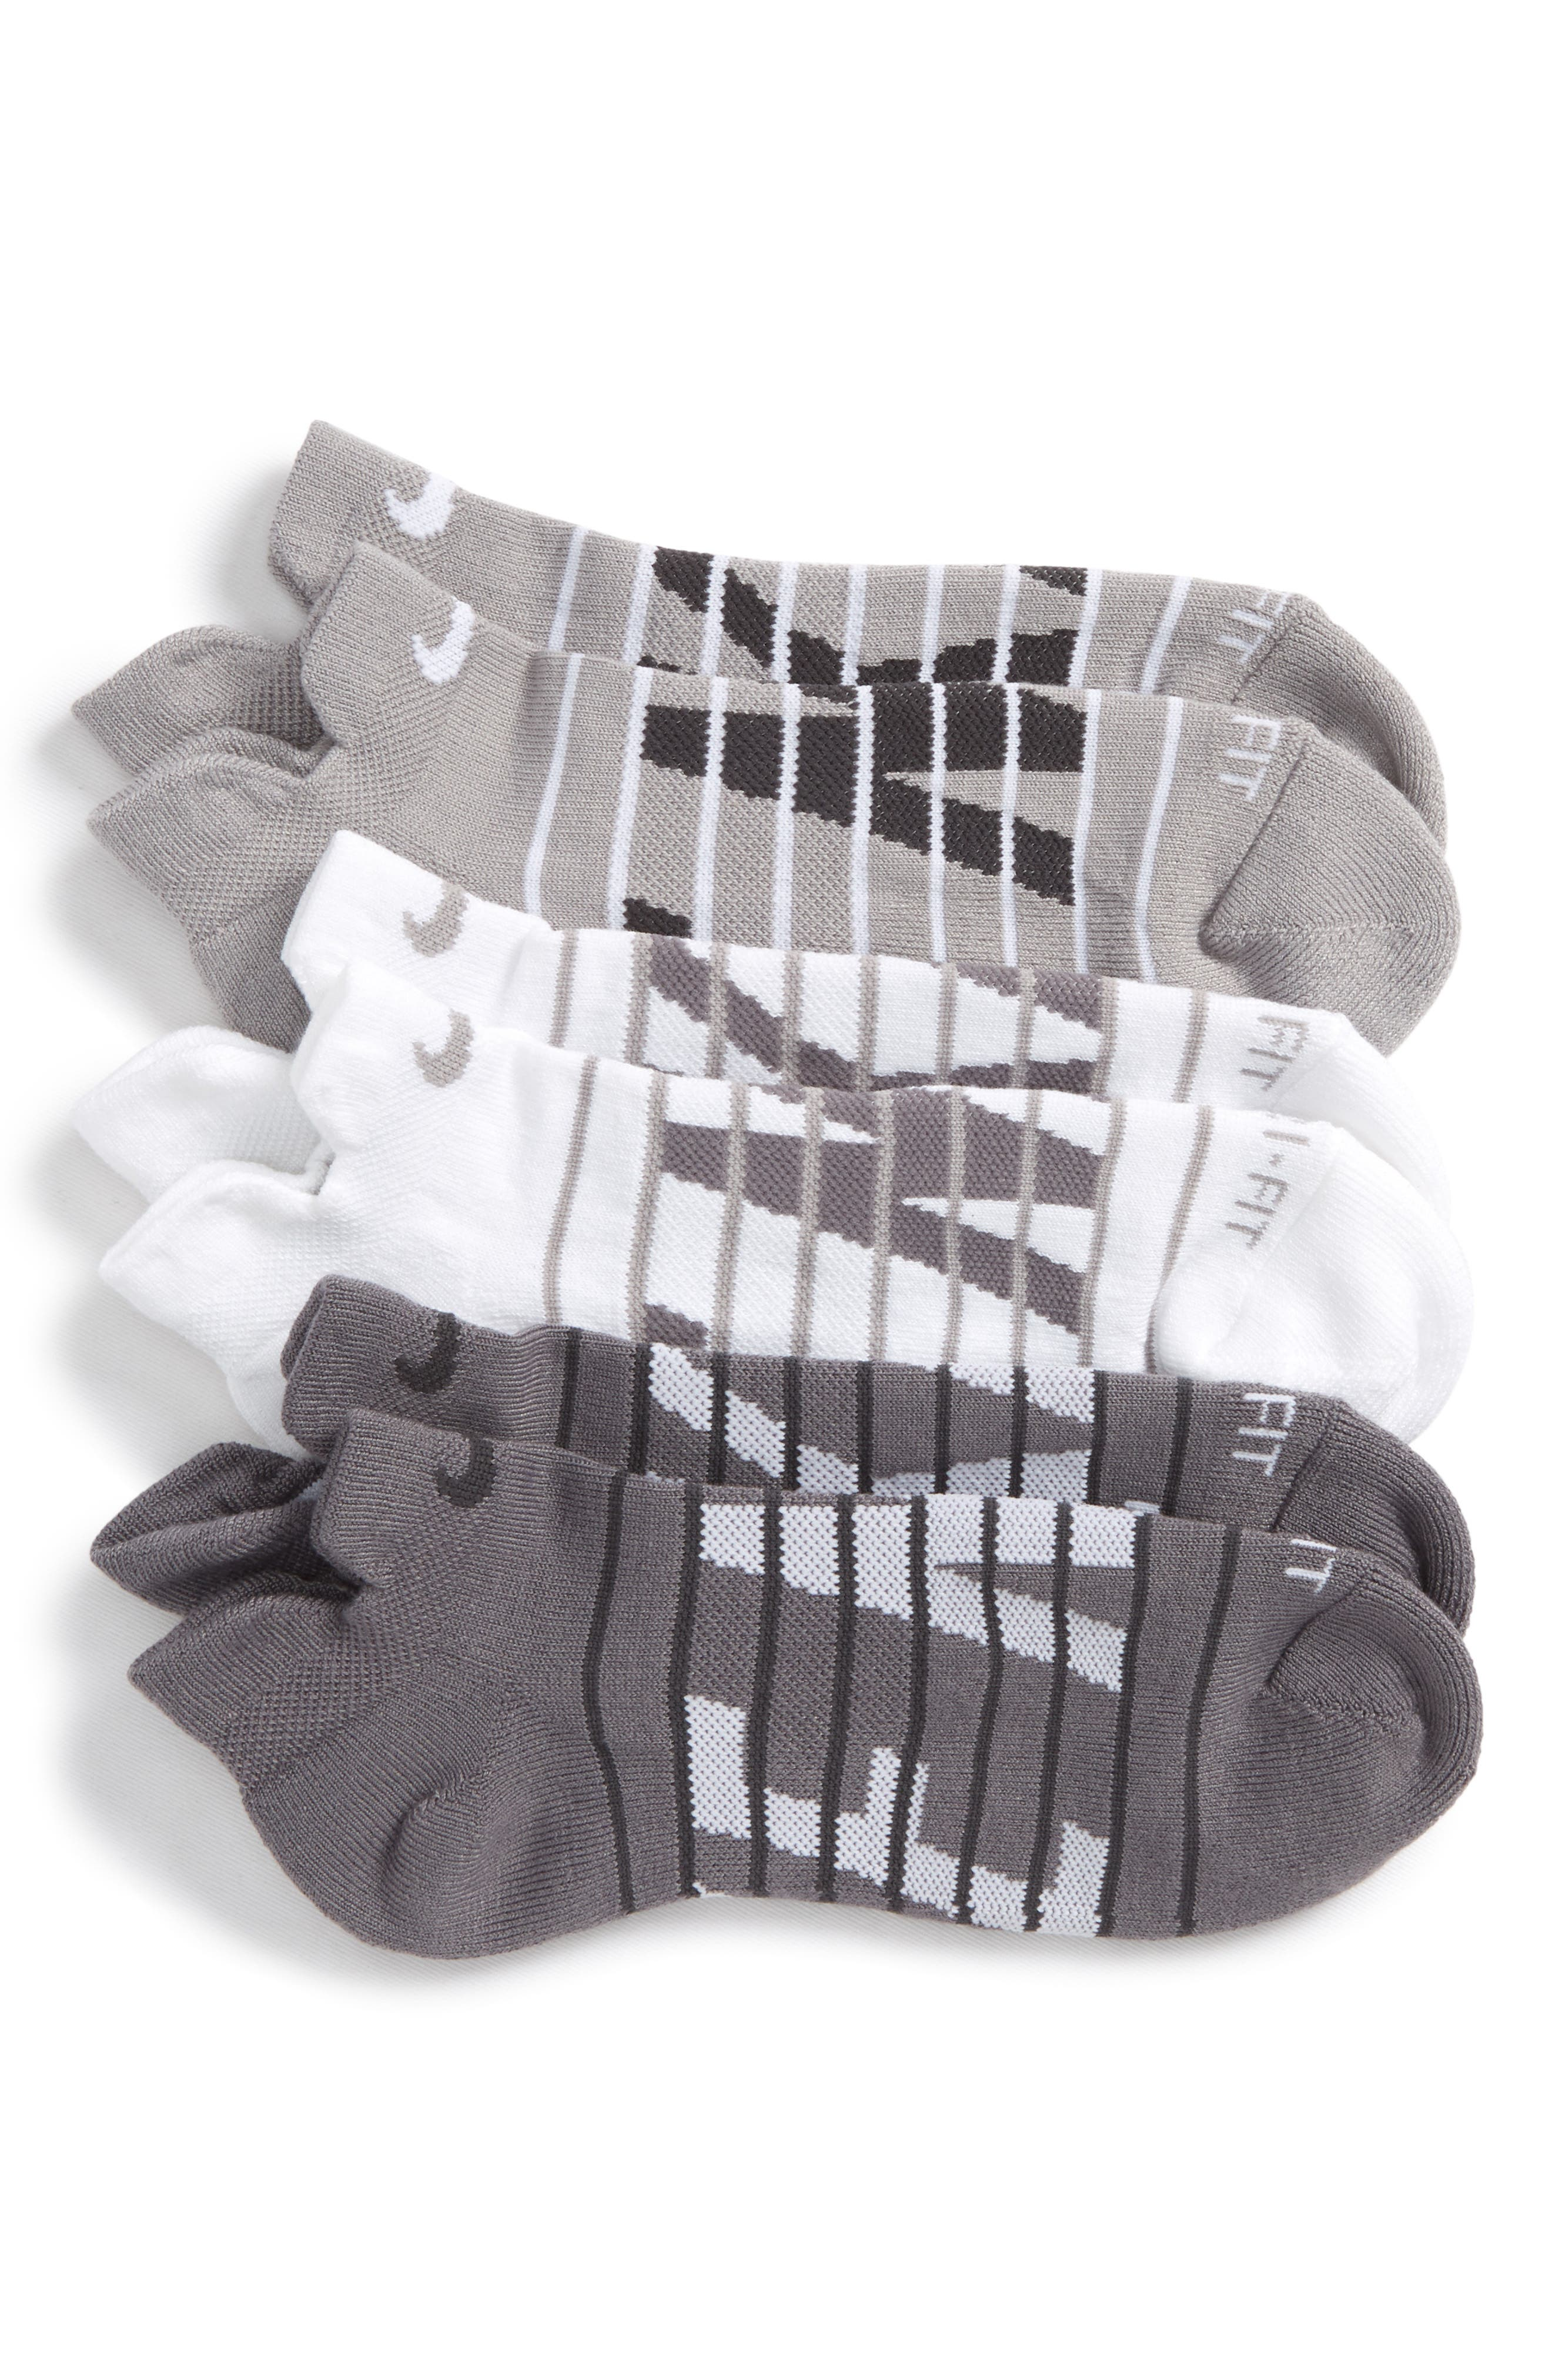 Dry Cushion 3-Pack Low-Cut Socks,                         Main,                         color,